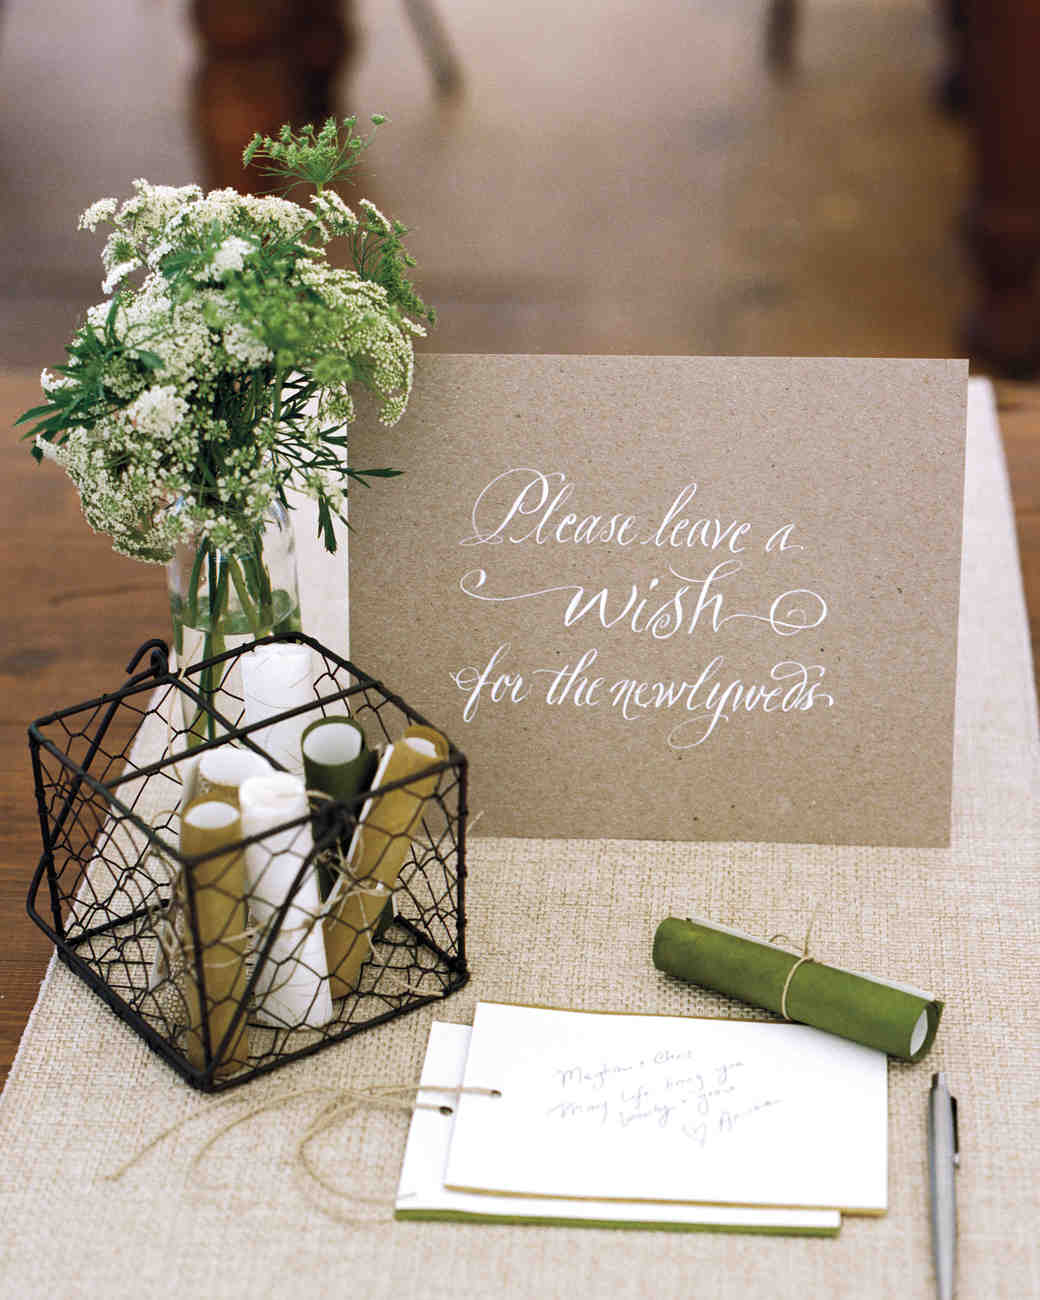 Interactive Wedding Ideas: 68 Guest Books From Real Weddings